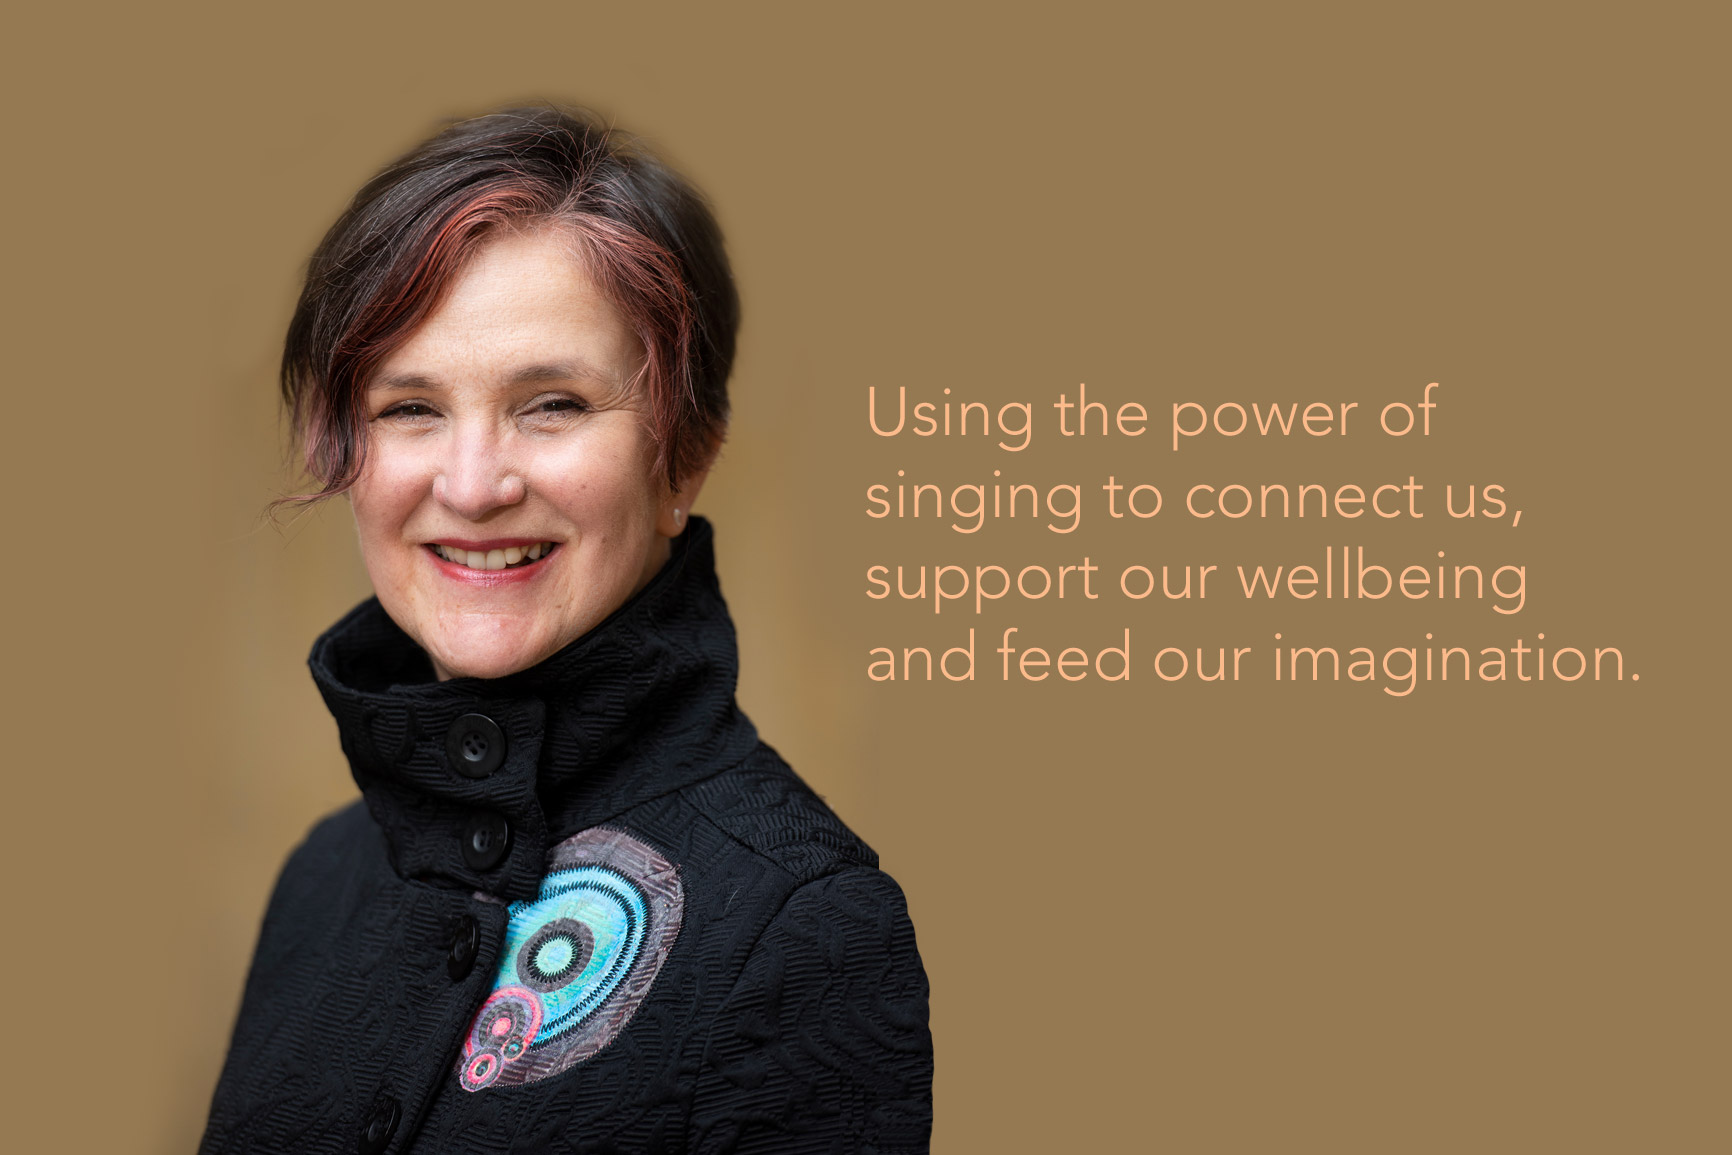 About Vivien Ellis, her background as a singer, performer, champion of group singing for wellbeing, community choir leader, trainer, music researcher & more.